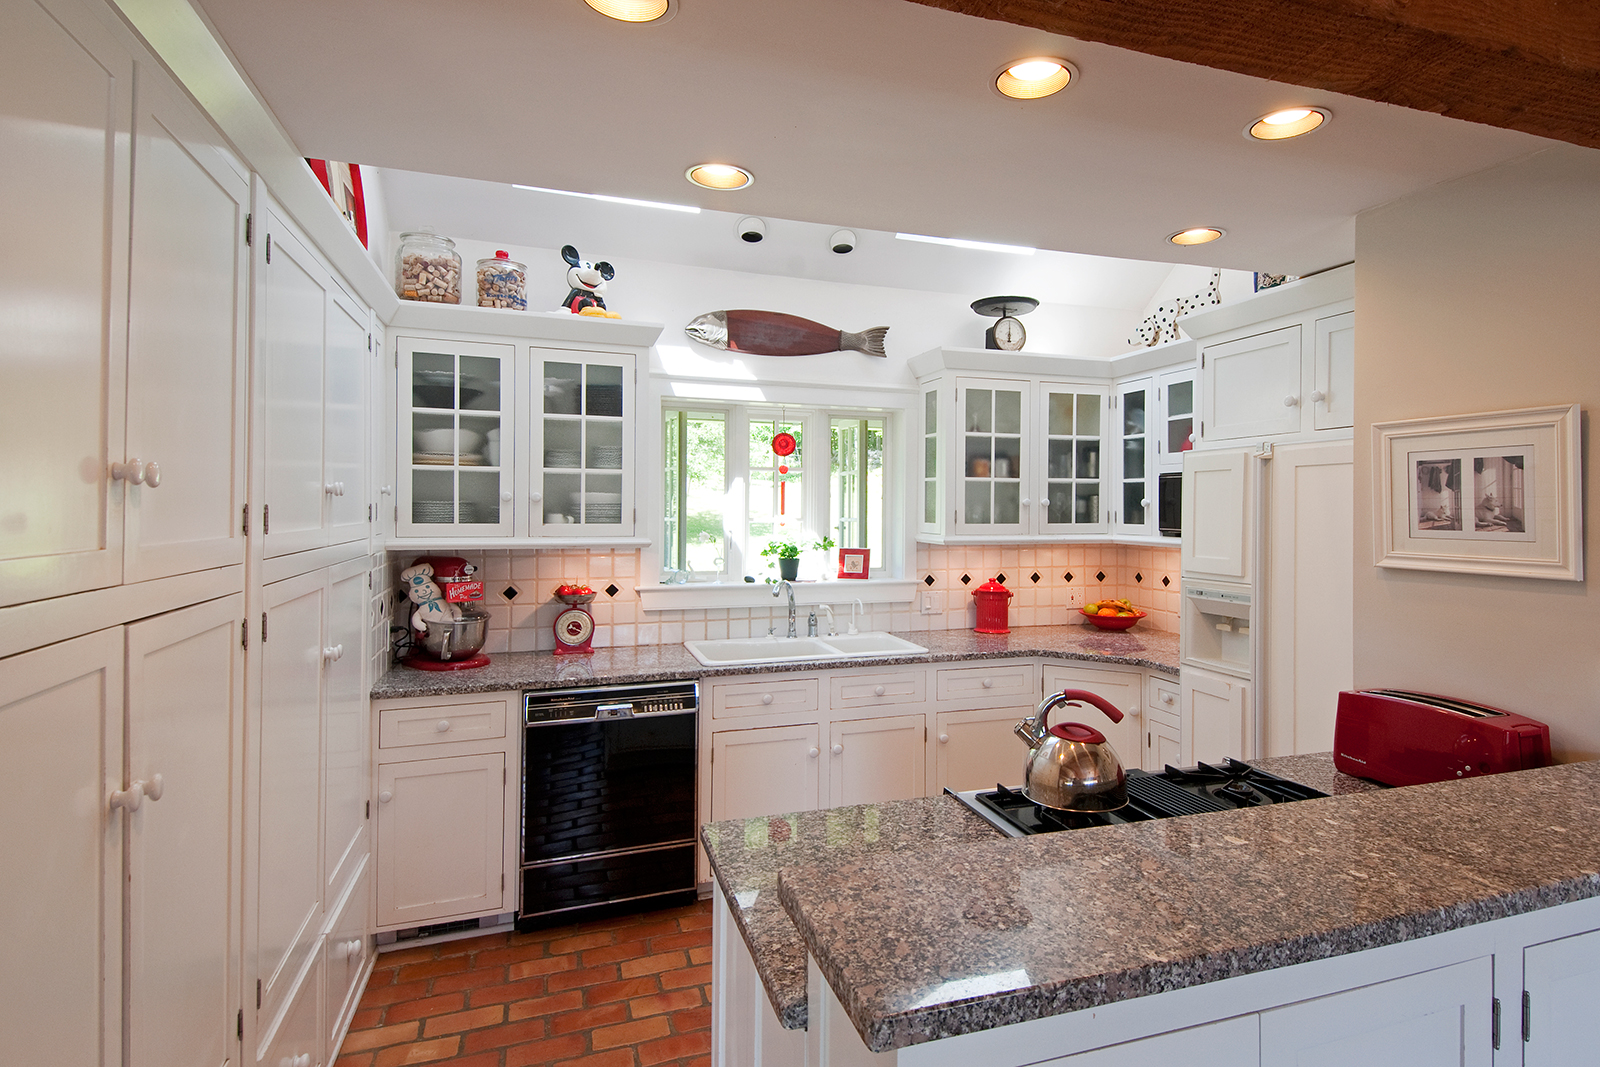 kitchen lighting design kitchen lighting design guidelines kitchen lighting design - Kitchen Lighting Design Guidelines